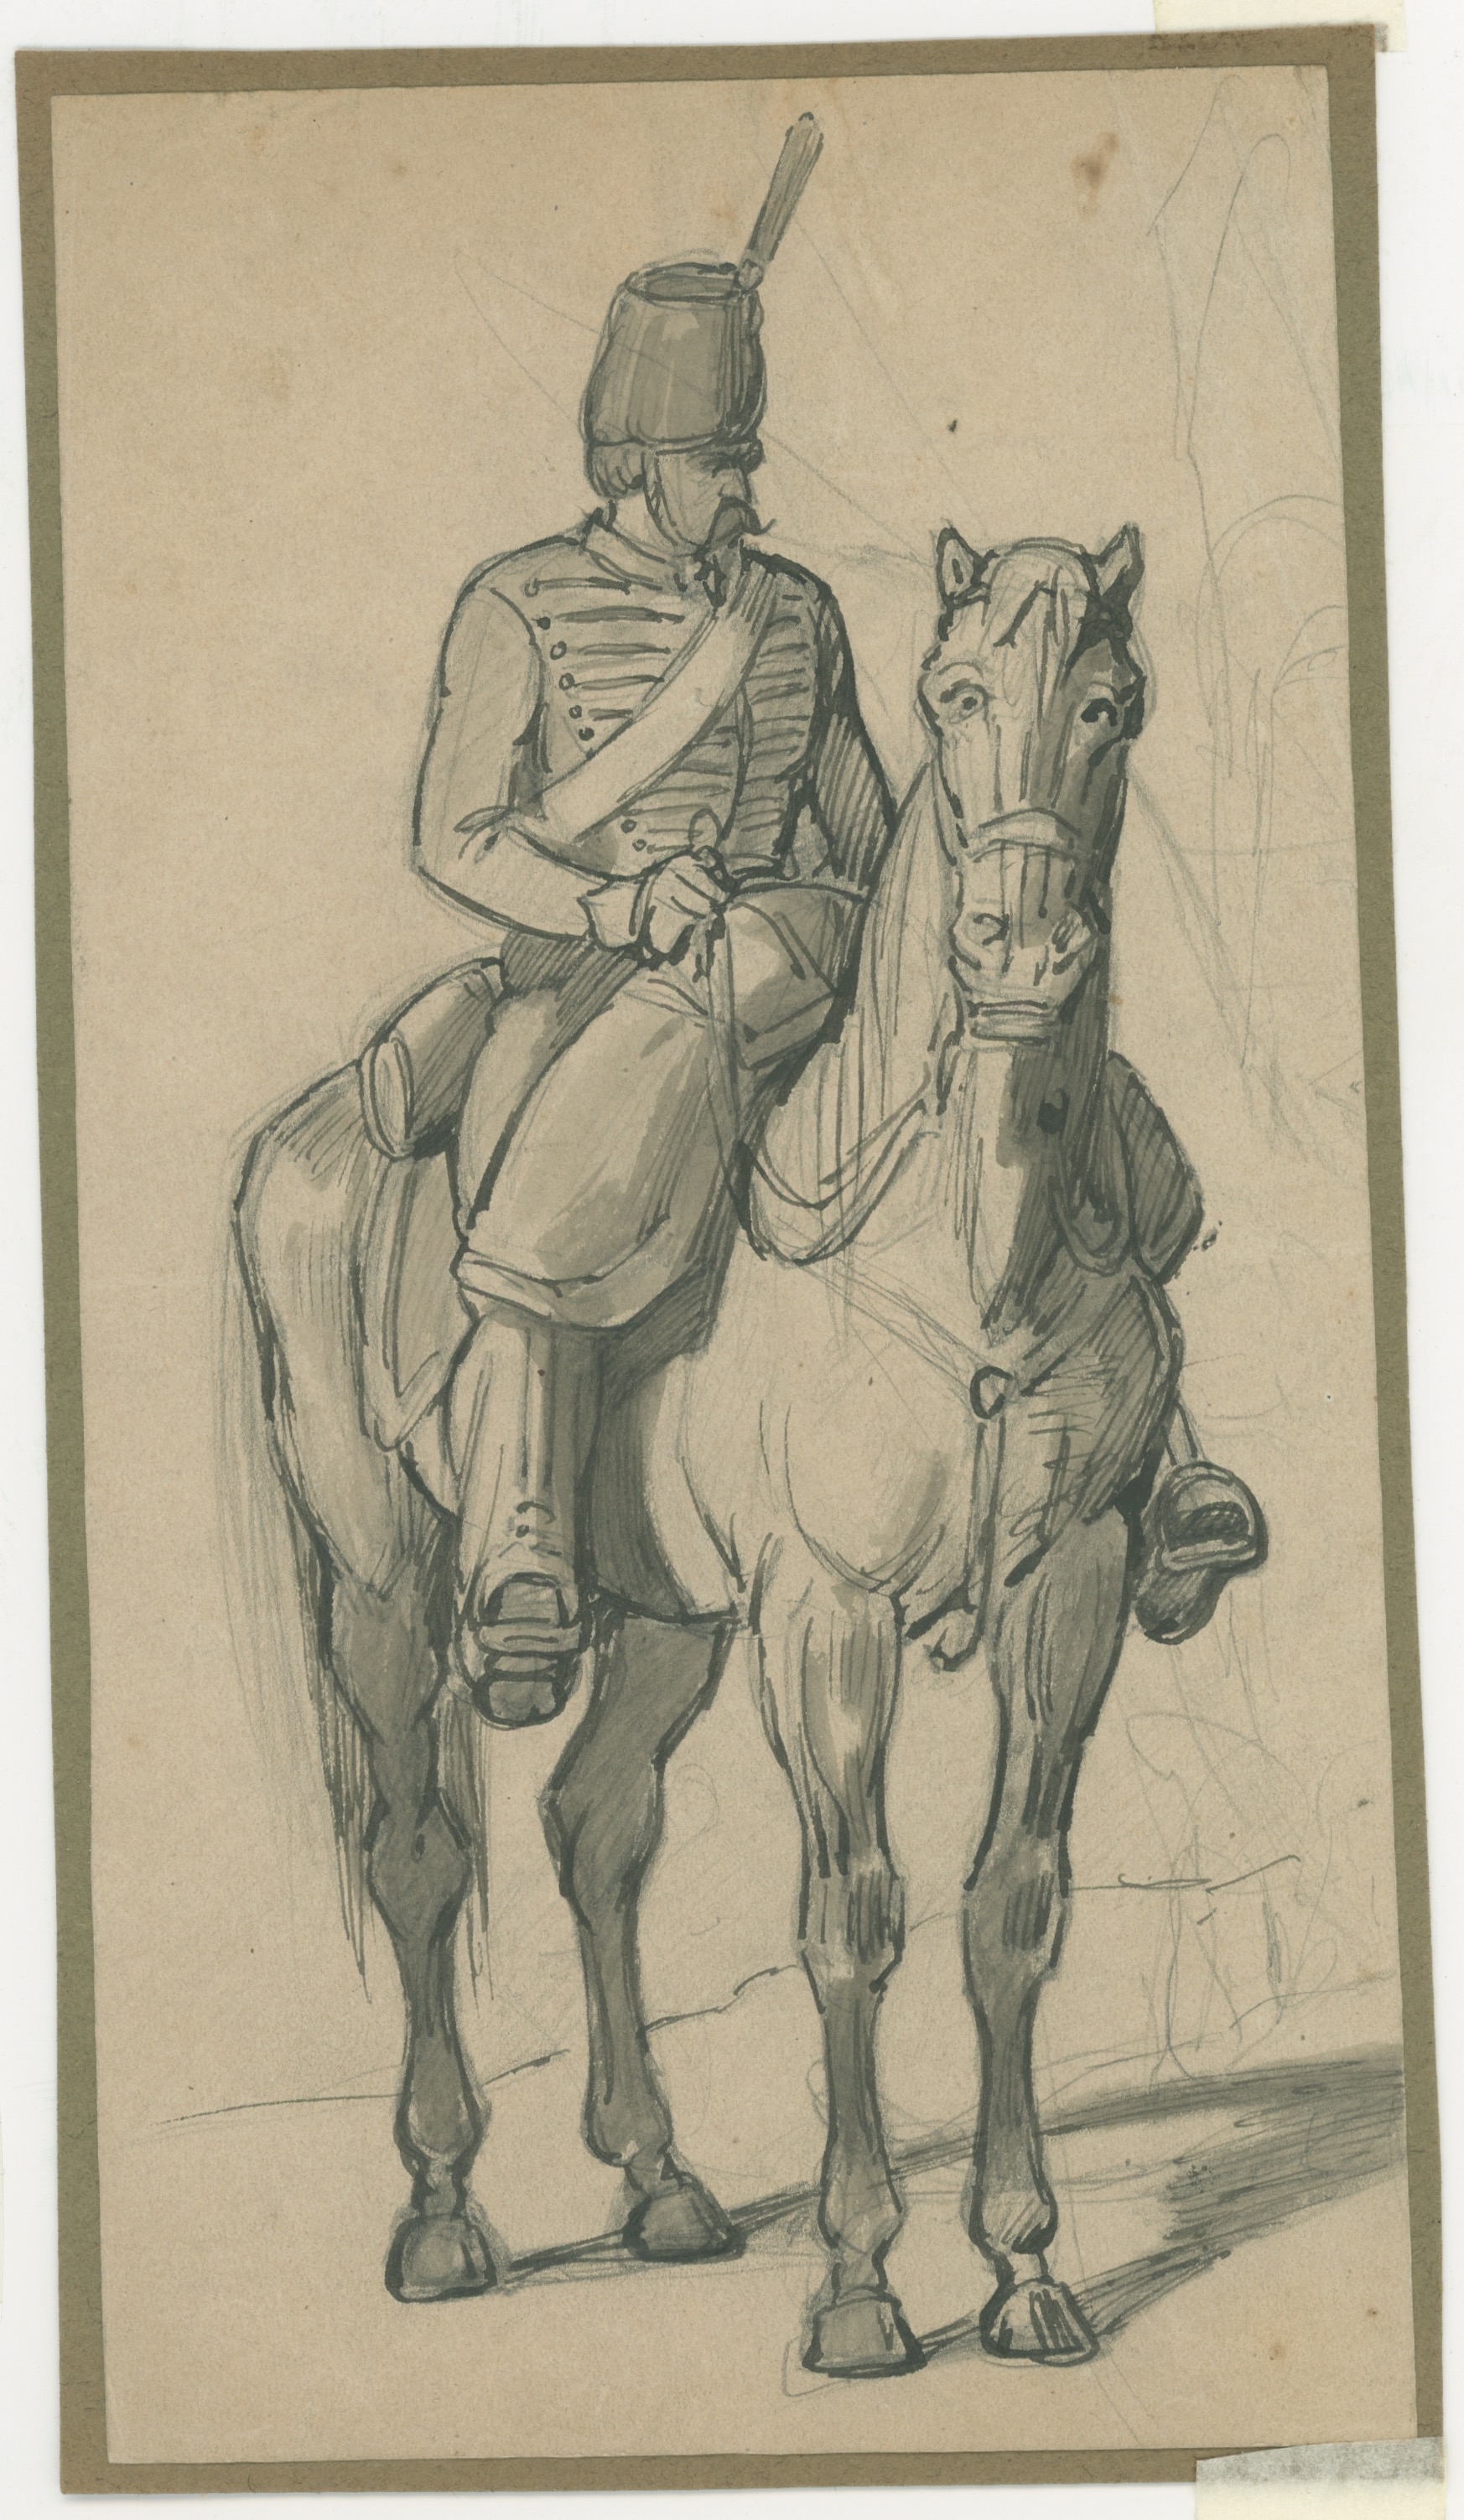 Dessin crayon rehaussé couleurs - Chasseur à Cheval - 1860 - Uniforme - Second Empire - Napoléon III - 1870